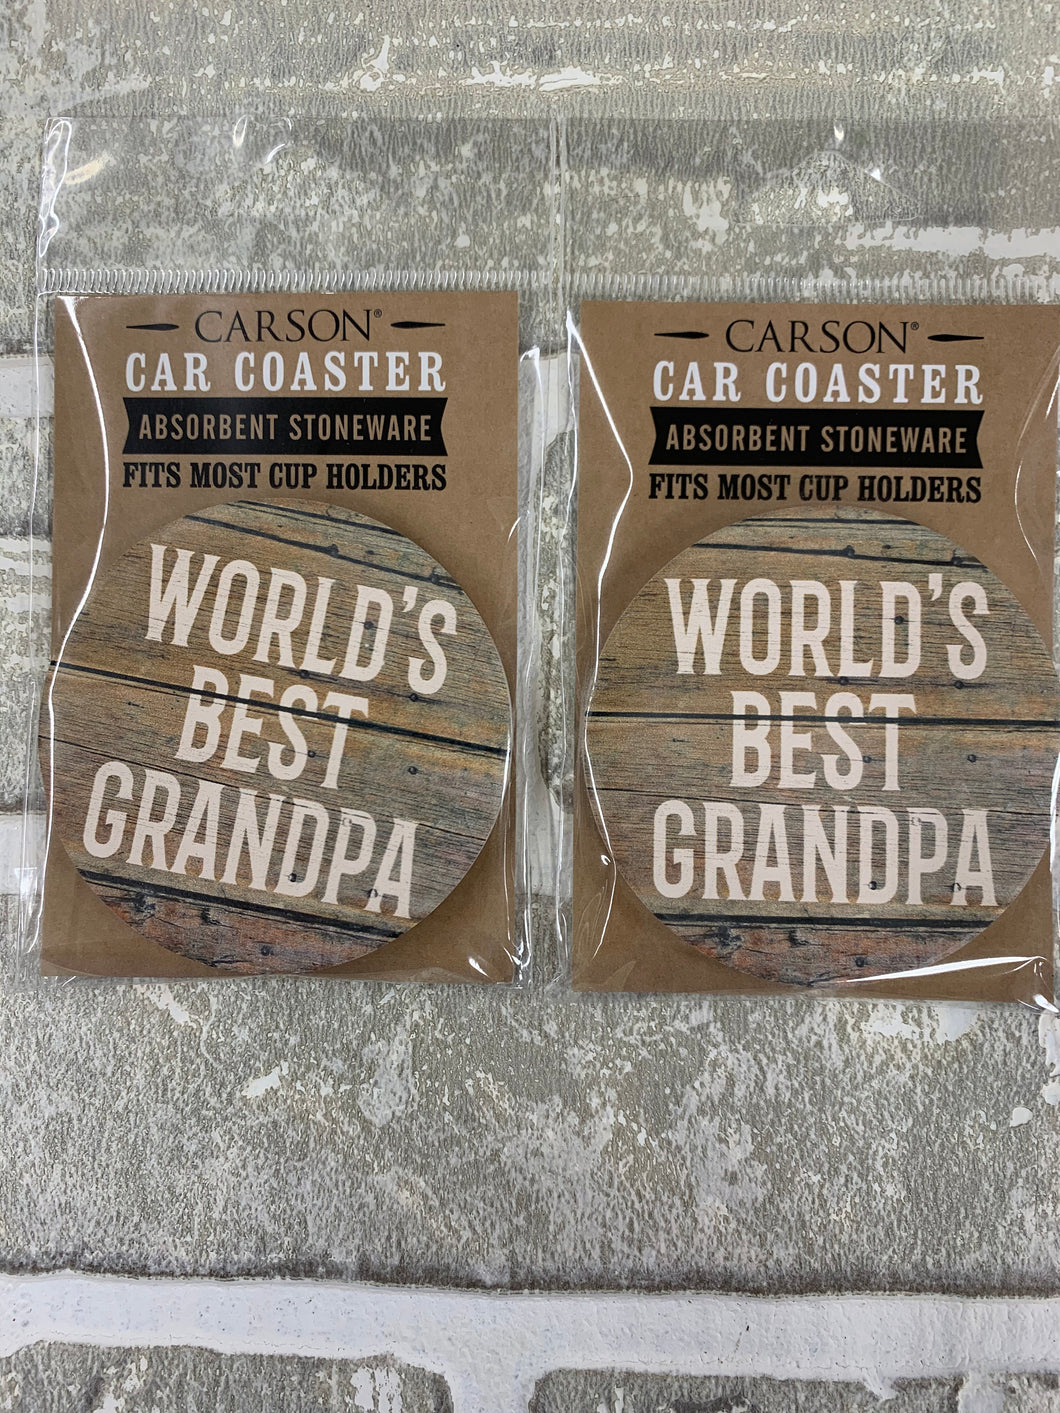 Worlds best grandpa car coasters